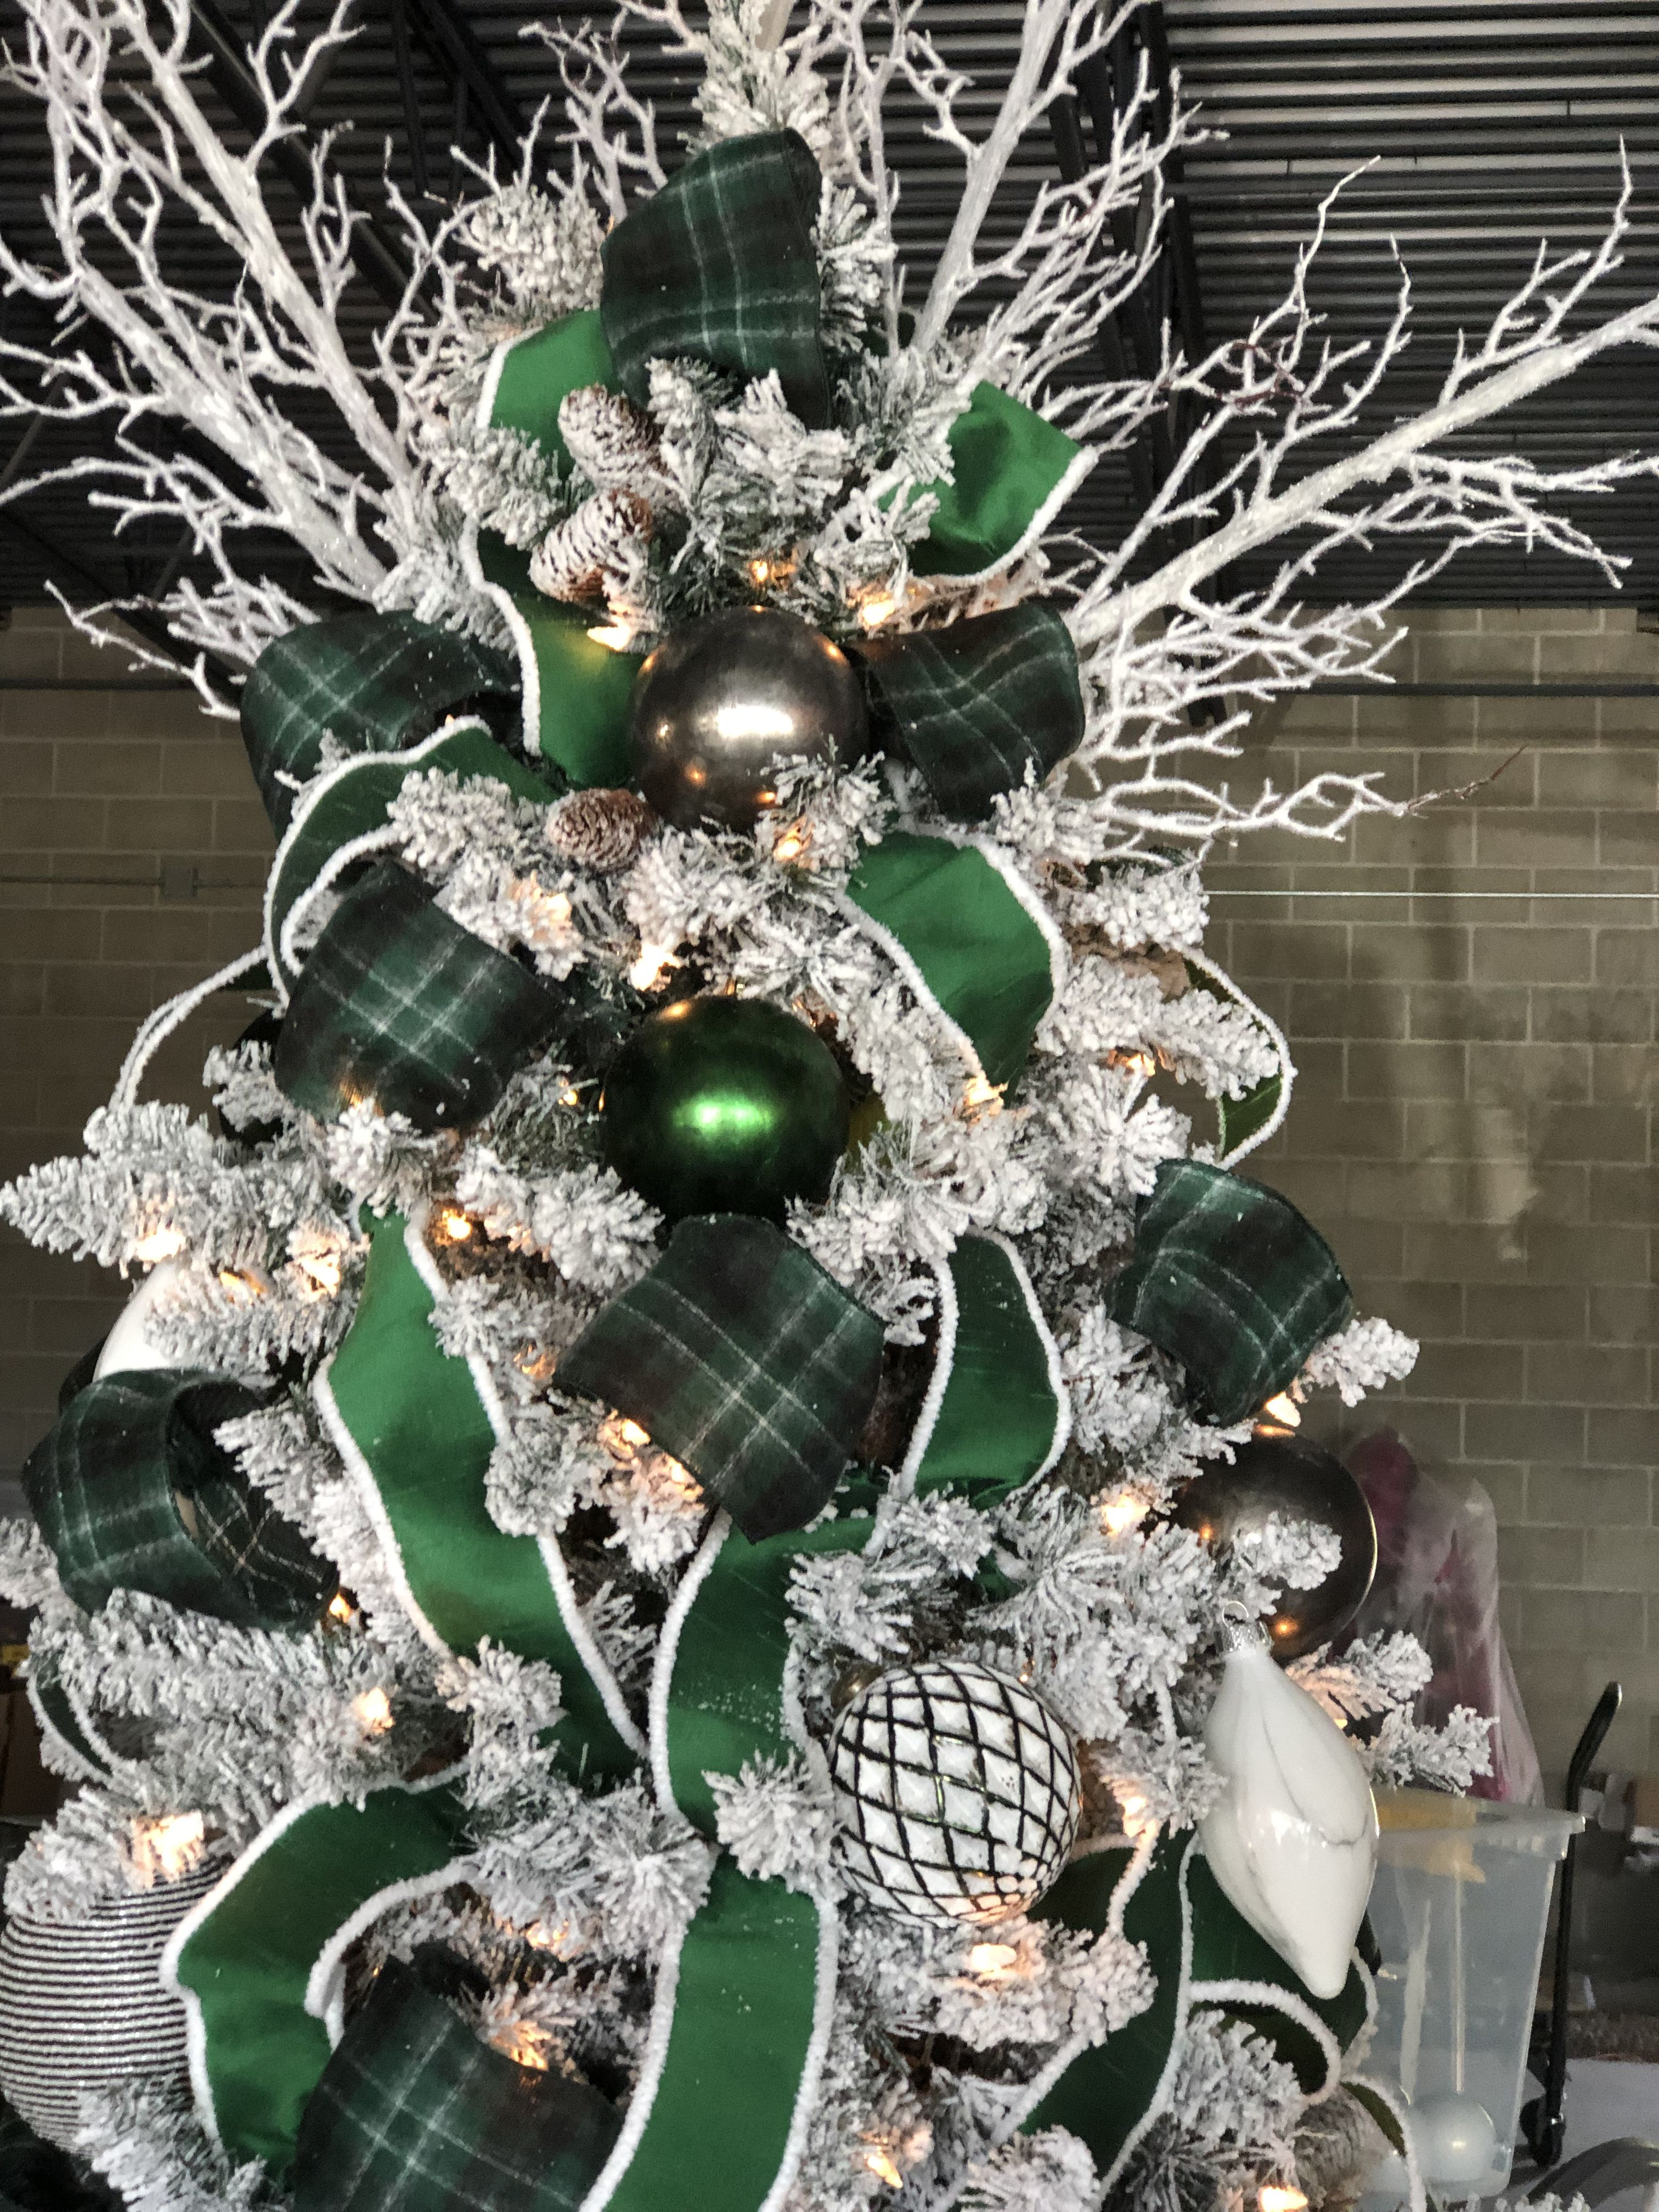 Pin by Marrying on Xmas trees | Green christmas tree ...